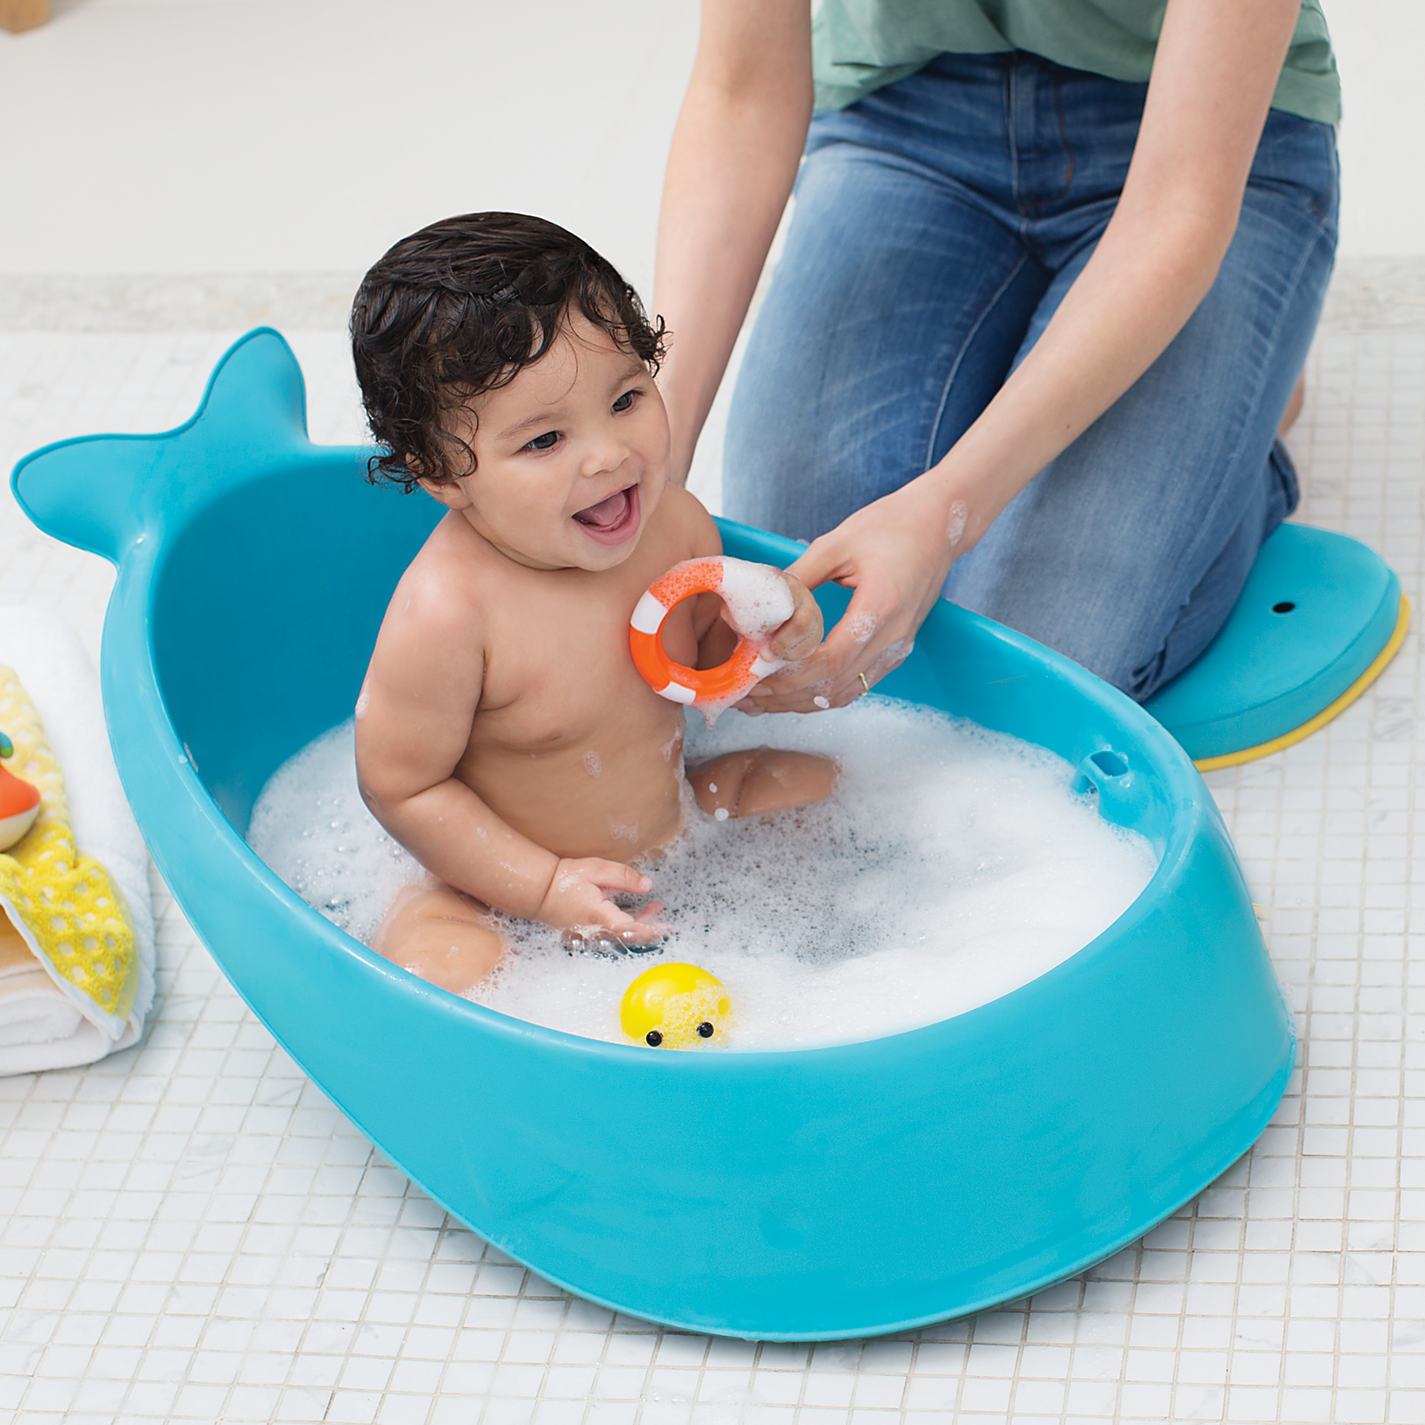 buy skip hop moby 3 stage baby bath tub | john lewis